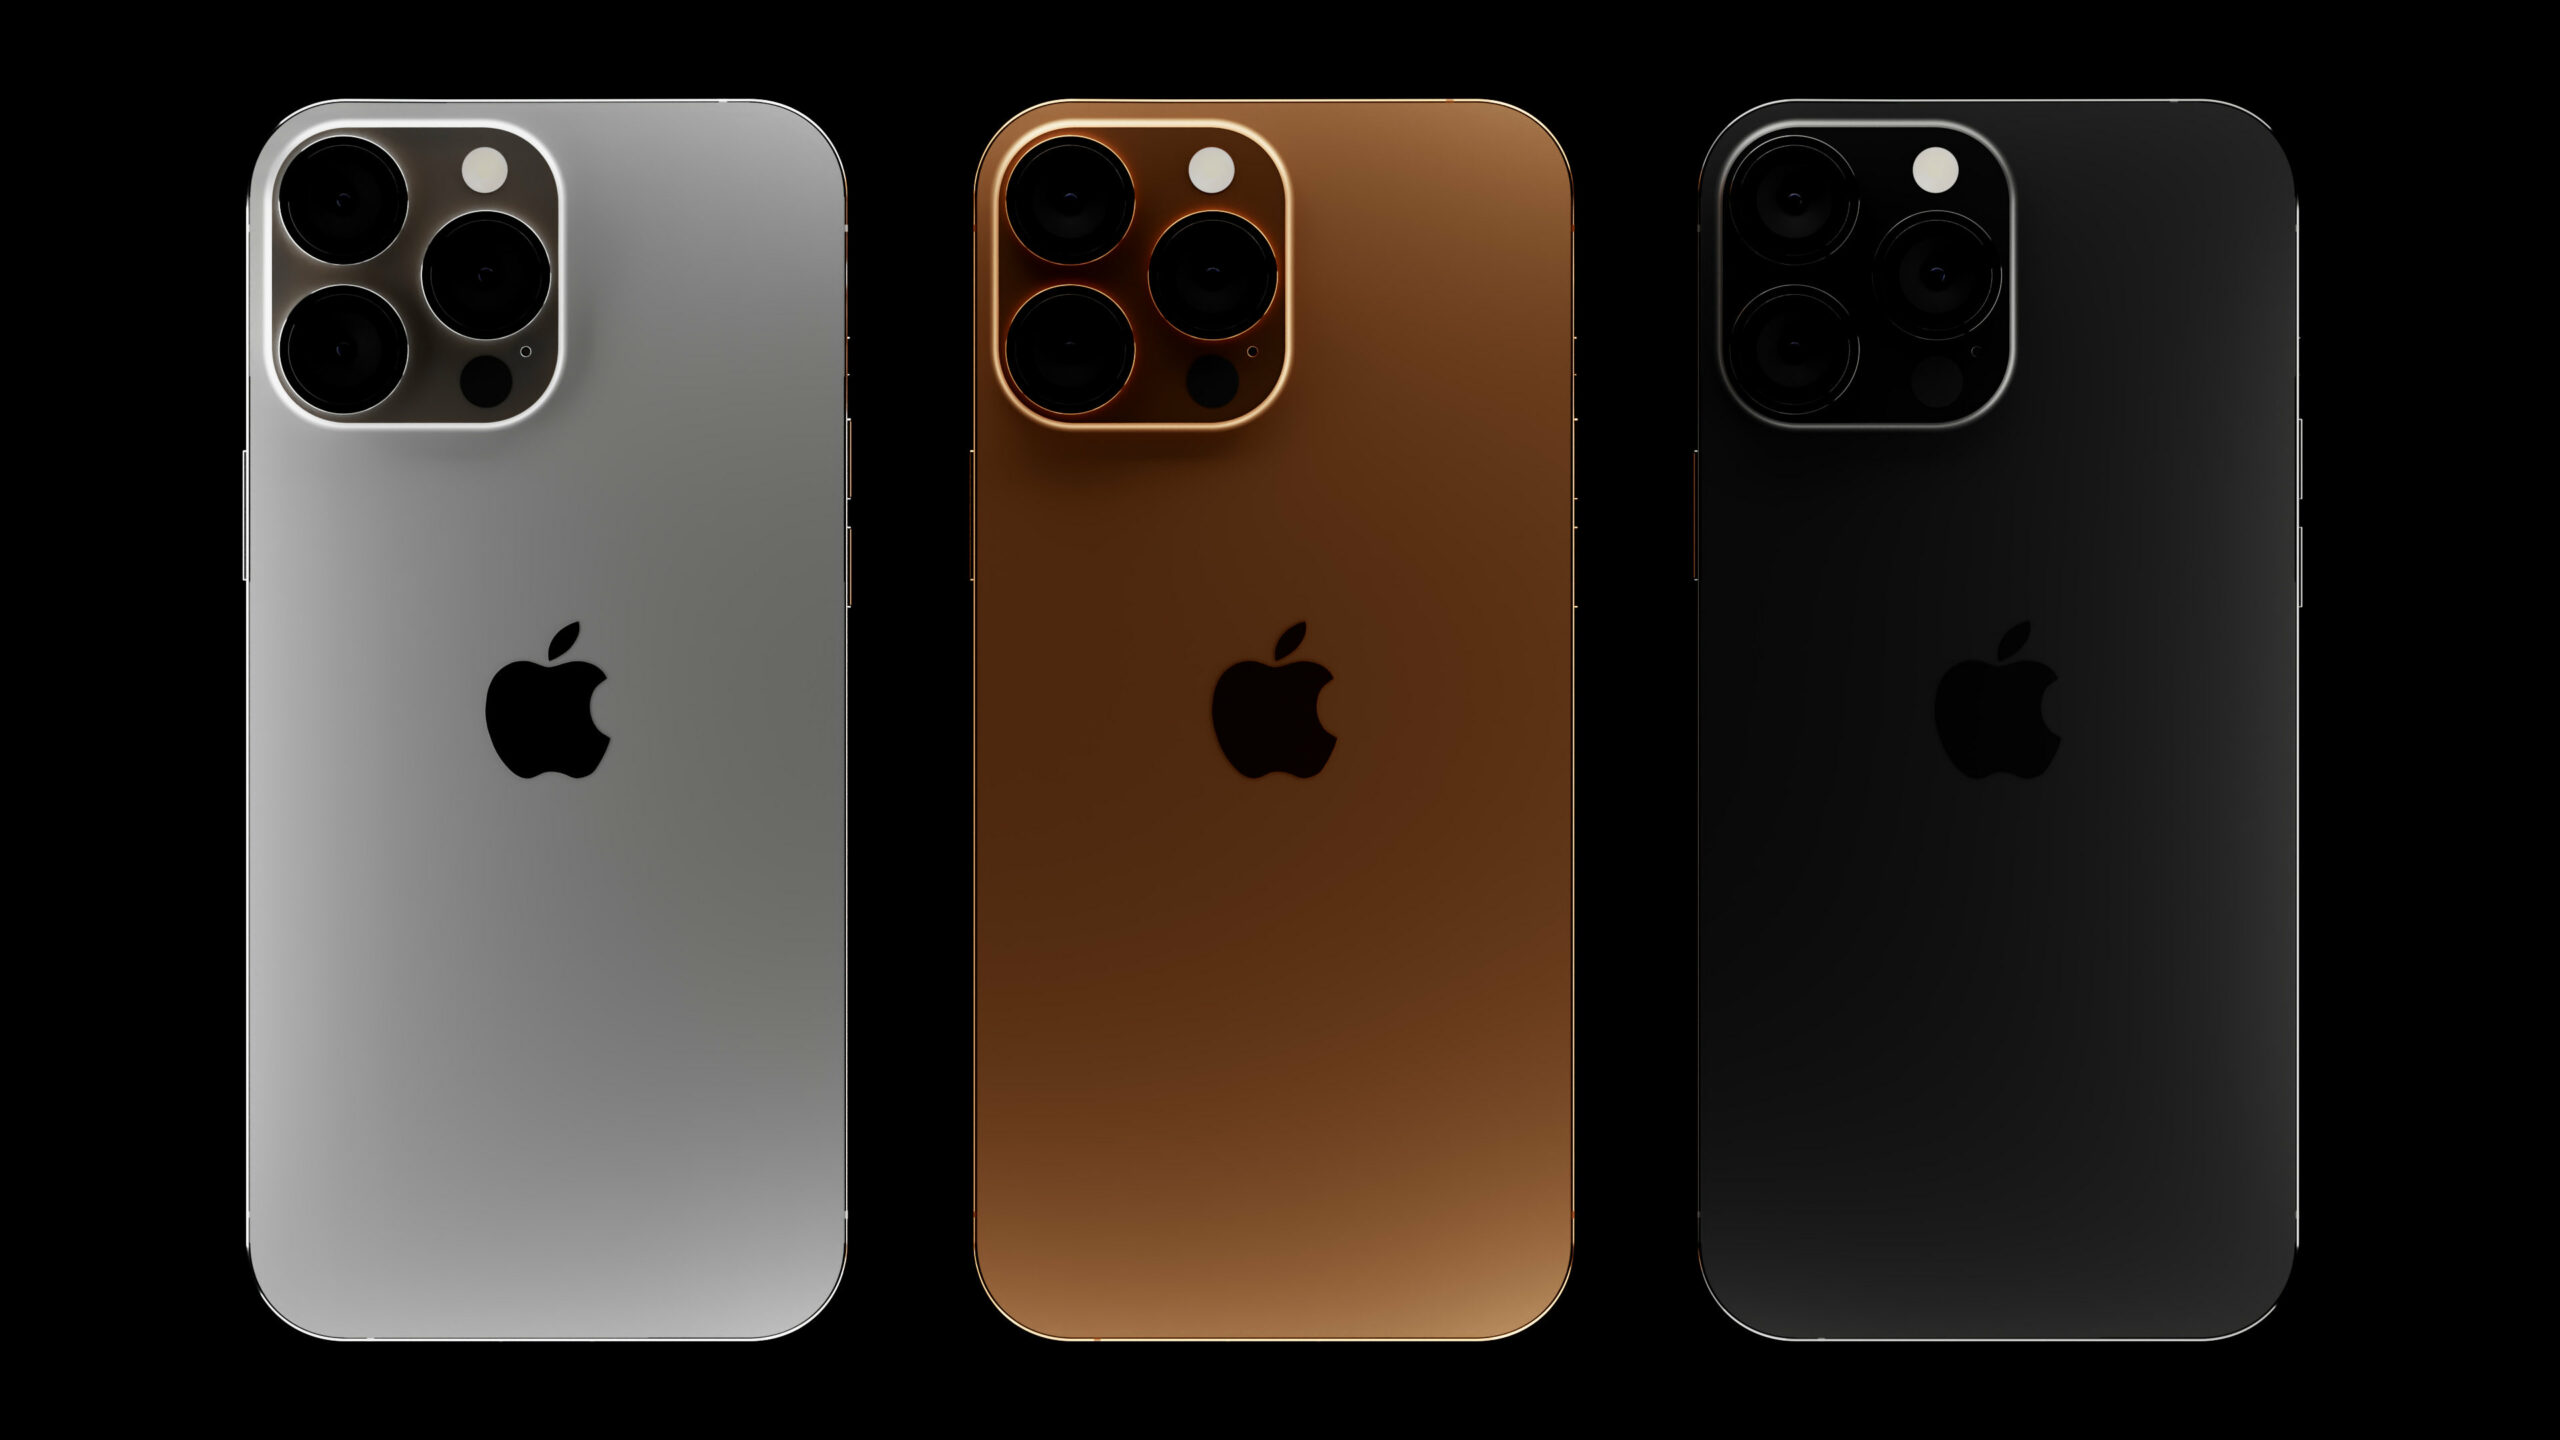 iPhone 13 VS iPhone 11 – Design and color changes